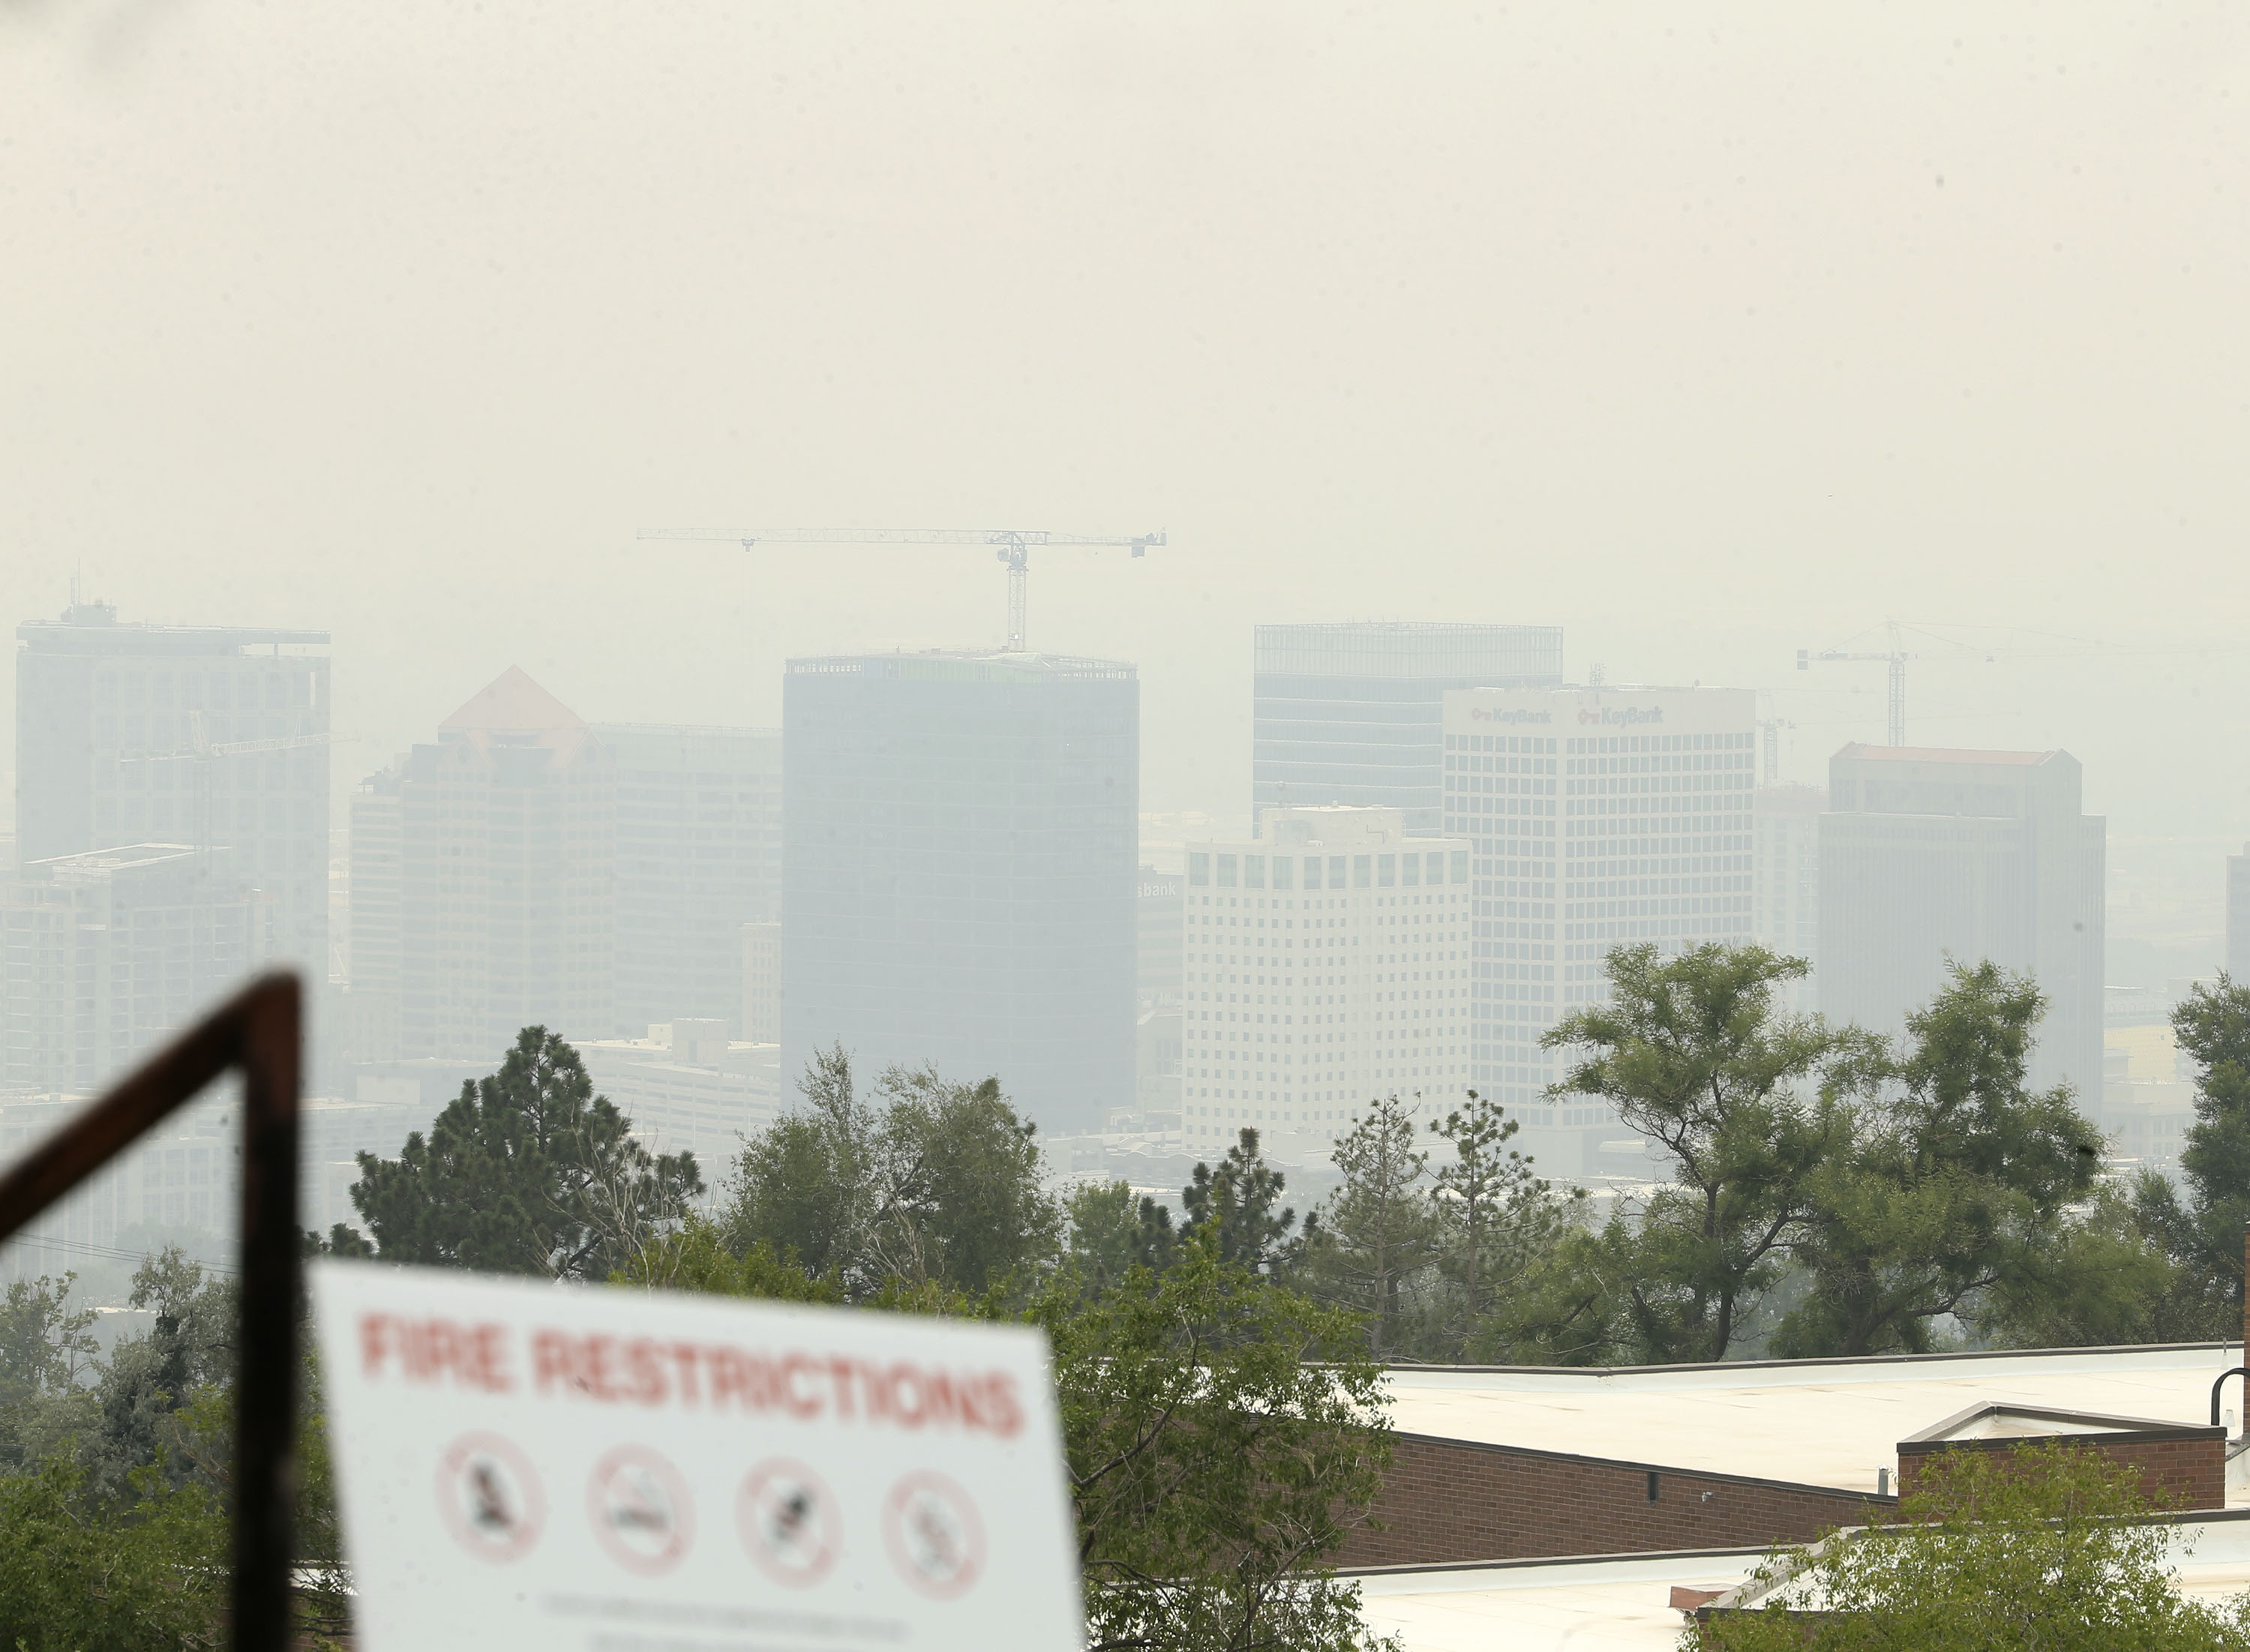 A fire restrictions warning sign is posted in Salt Lake City, obscured by smoke from the California and Oregon wildfires.